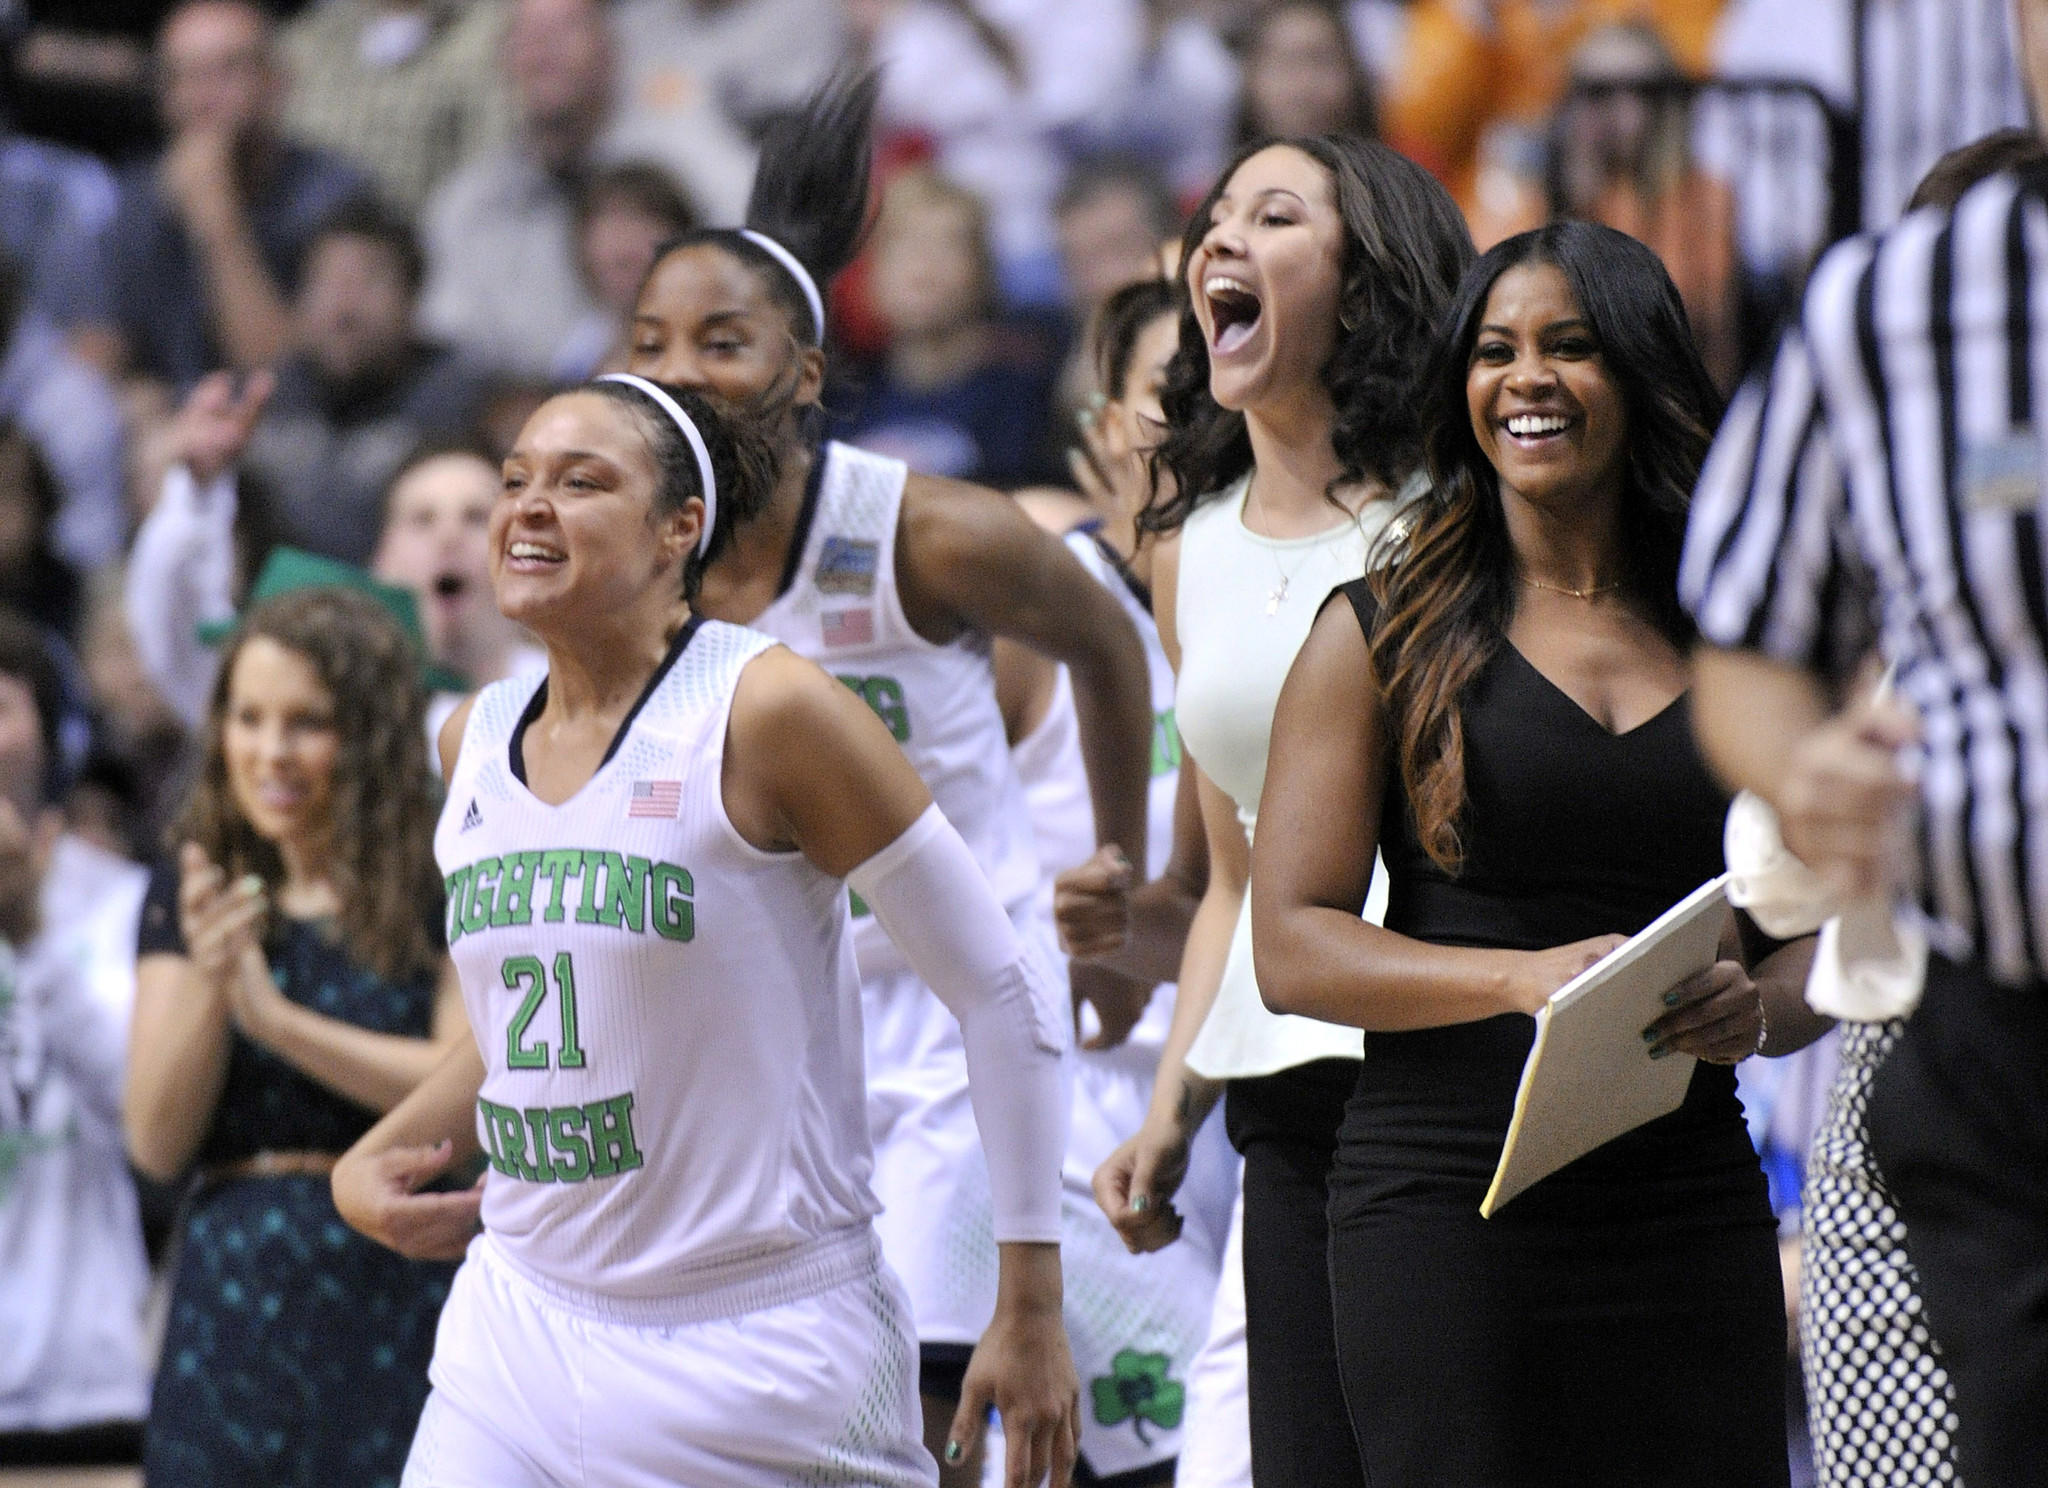 Notre Dame's Kayla McBride (21) and her teammates celebrate winning the game against Maryland.